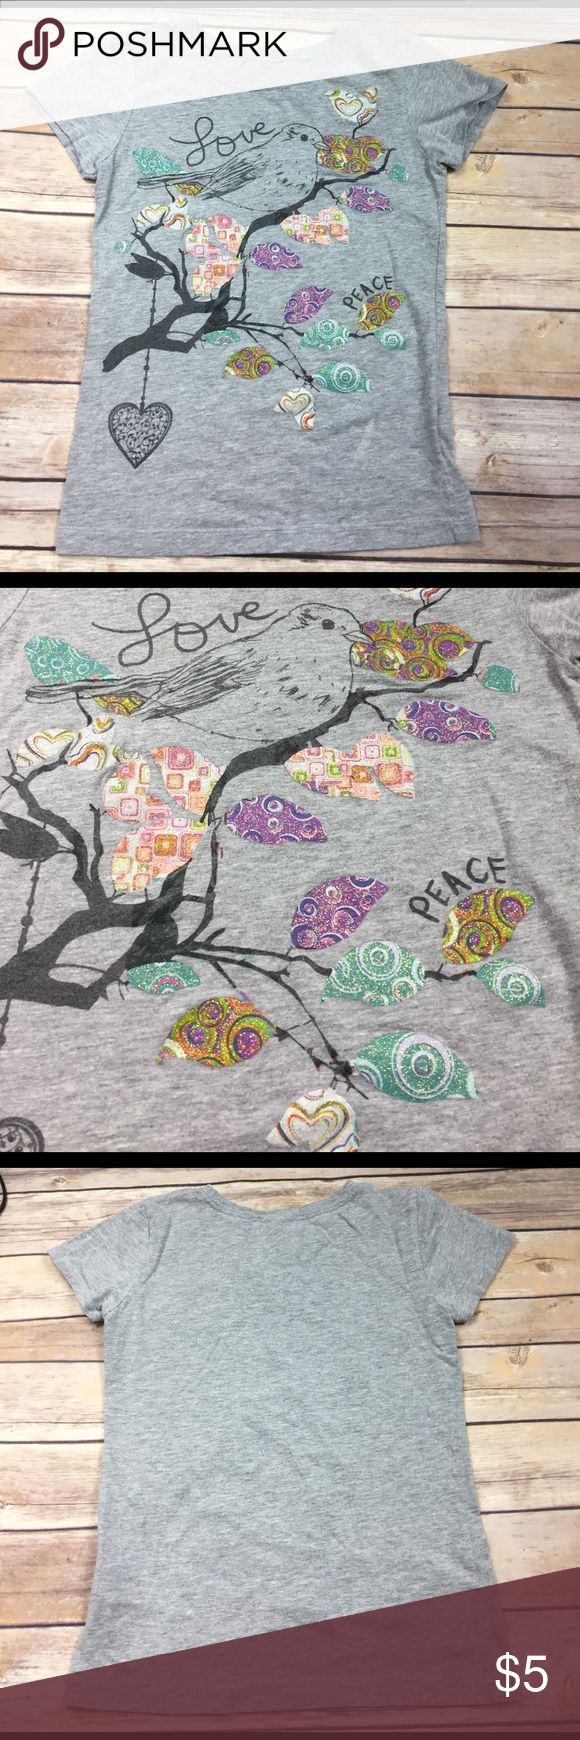 💜Cold Crush size 7/8 Girls tee Sparkly and multi-patterns!  Unique, gently pre-owned tee.  🛍 bundle 2+ items and receive a 25% discount automatically 🛍 Cold Crush Shirts & Tops Tees - Short Sleeve